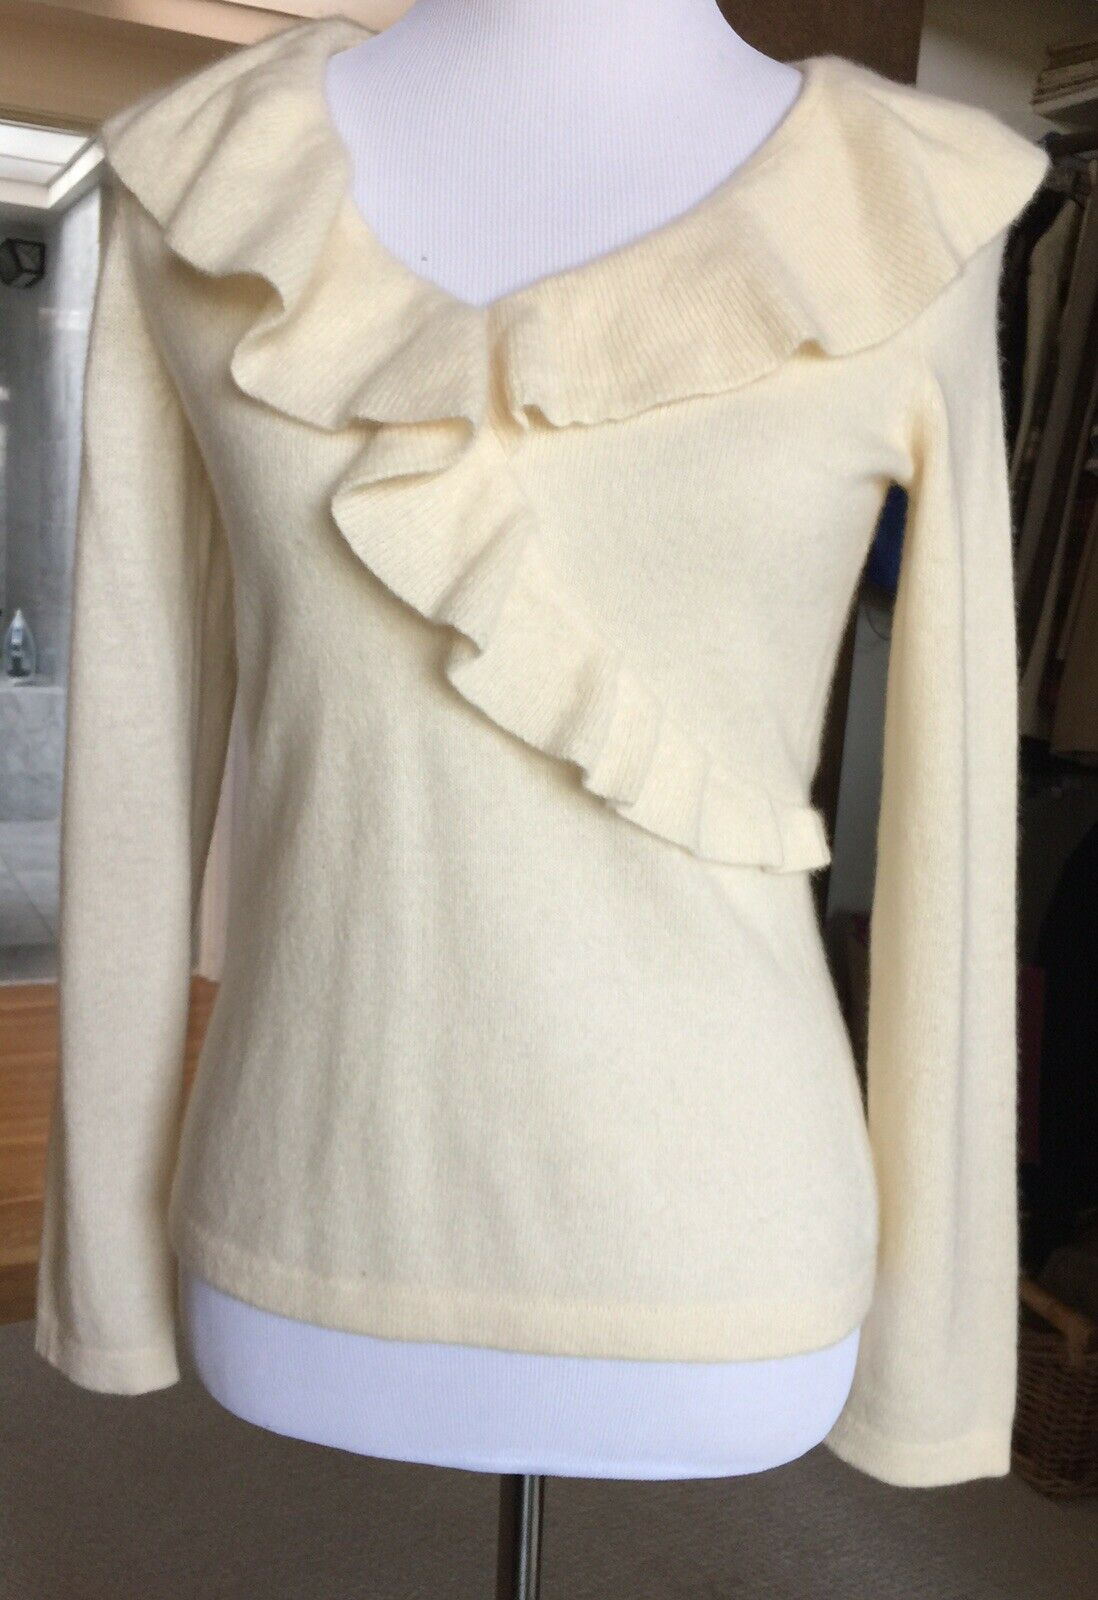 New NWT Charter Club 100% Cashmere Ivory Ruffled Credver Sweater Size S Small